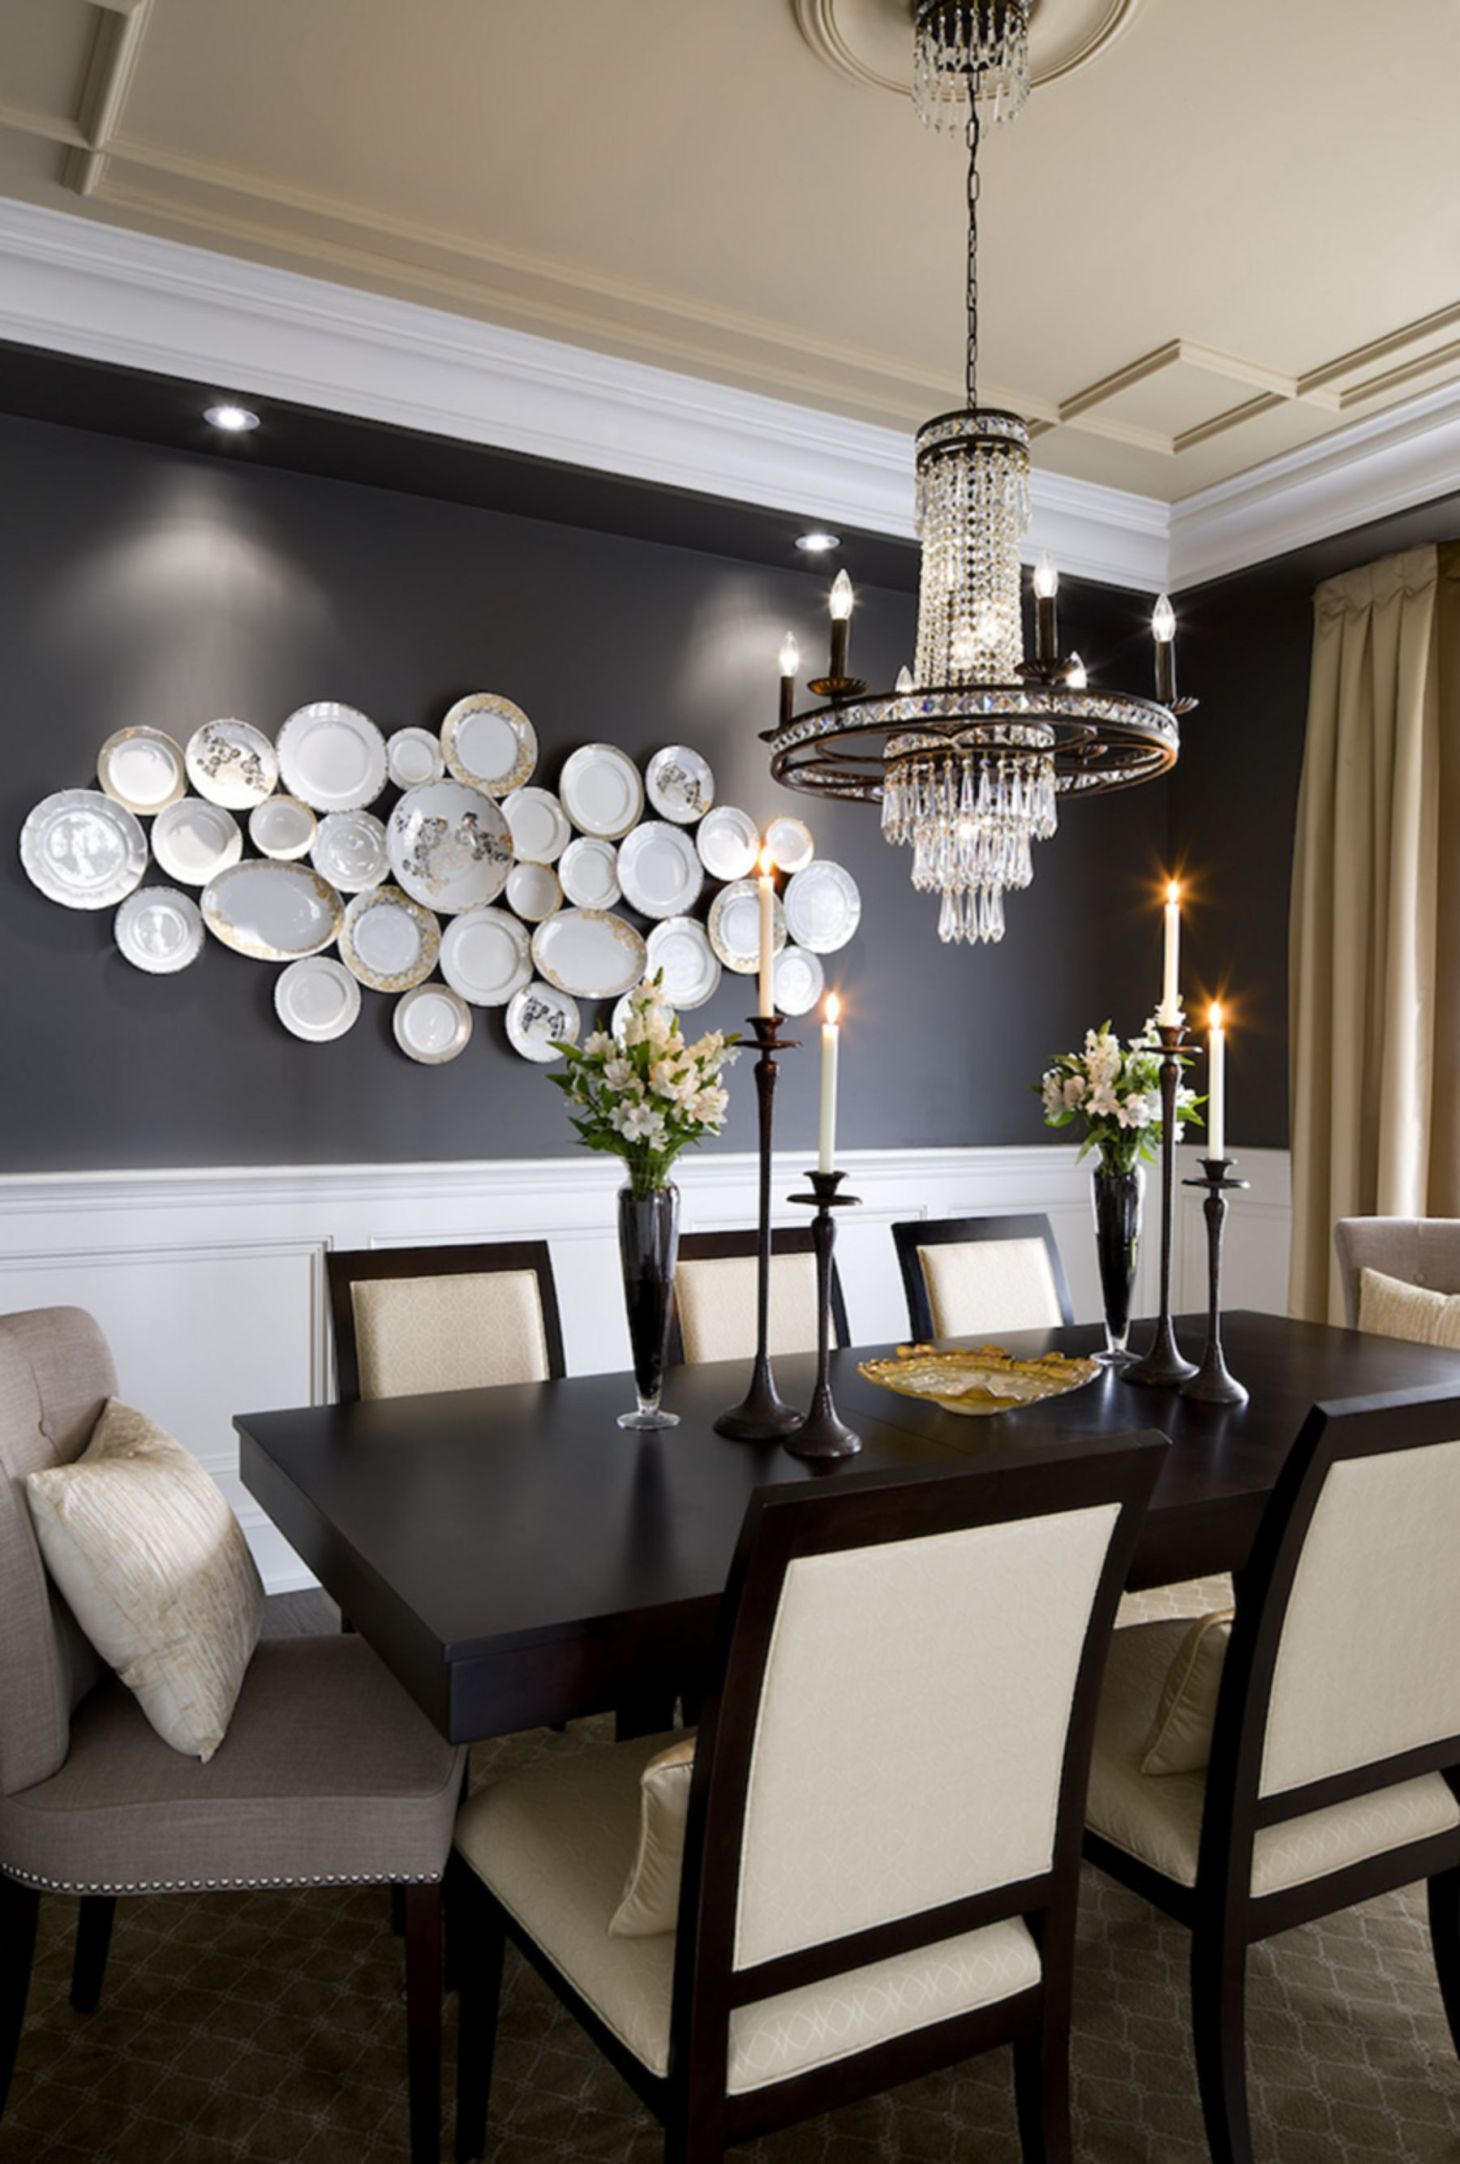 10 Awesome Dining Table Design Ideas For Your Dining Room Moolton Beautiful Dining Rooms Dining Room Wall Decor Small Dining Room Decor